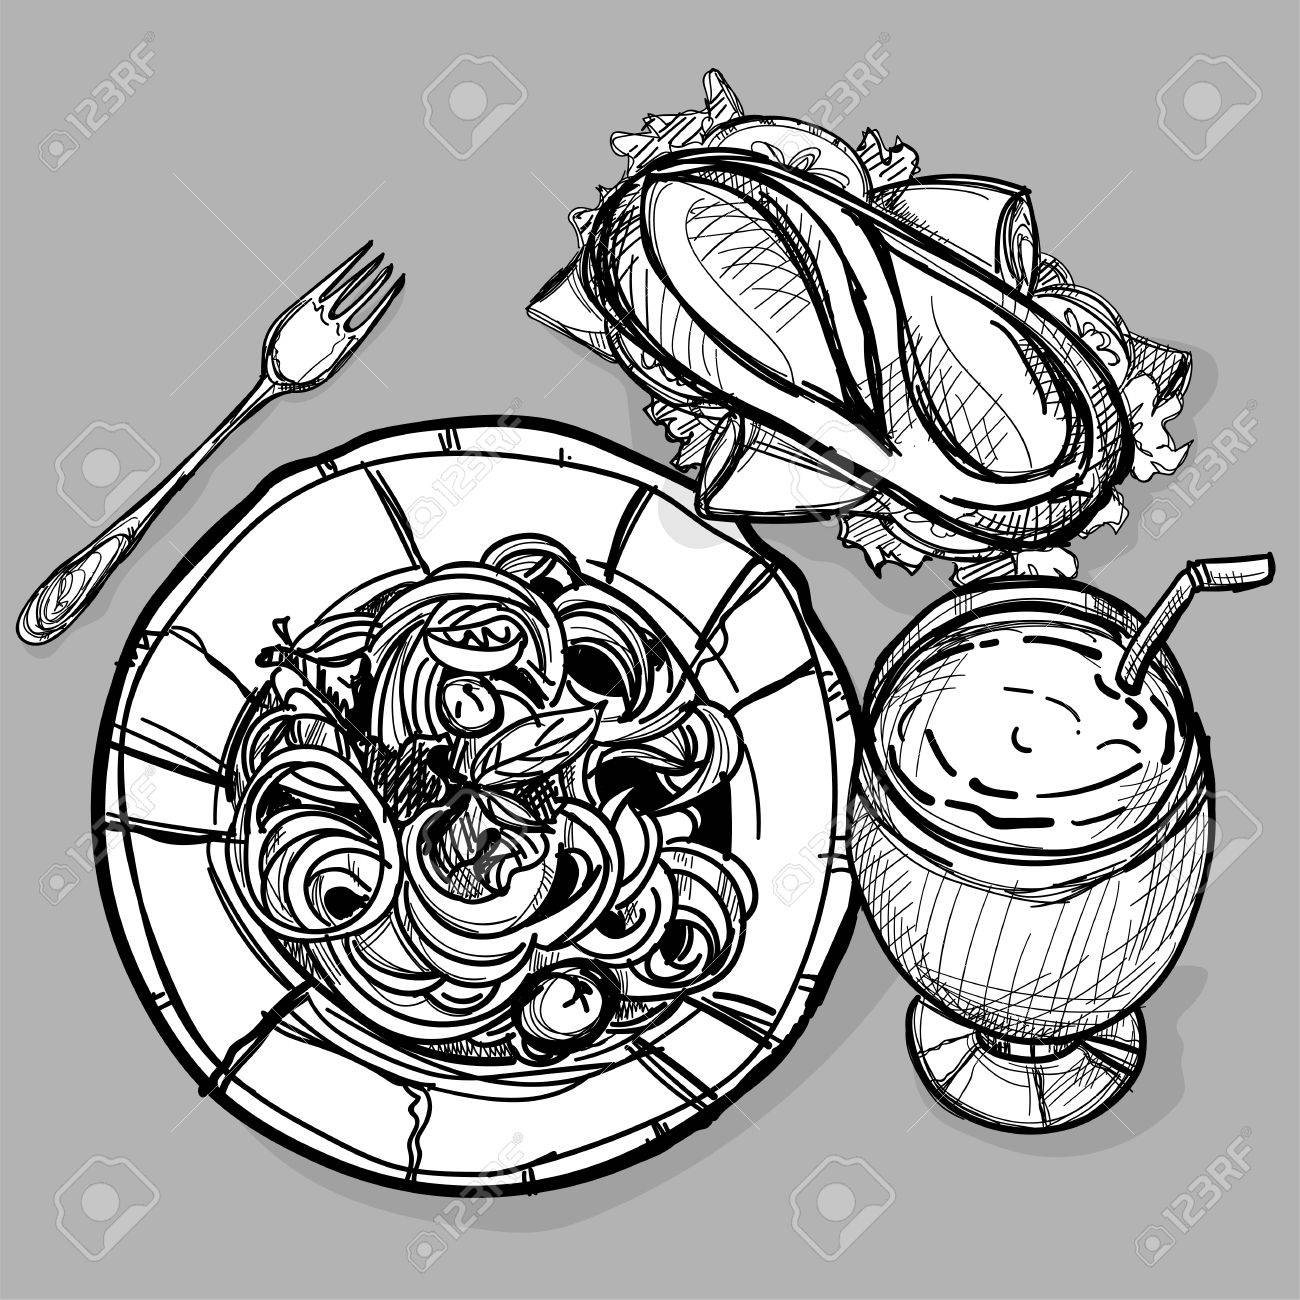 1300x1300 Food Sandwich Drink Spaghetti Set Drawing Graphic Illustrate